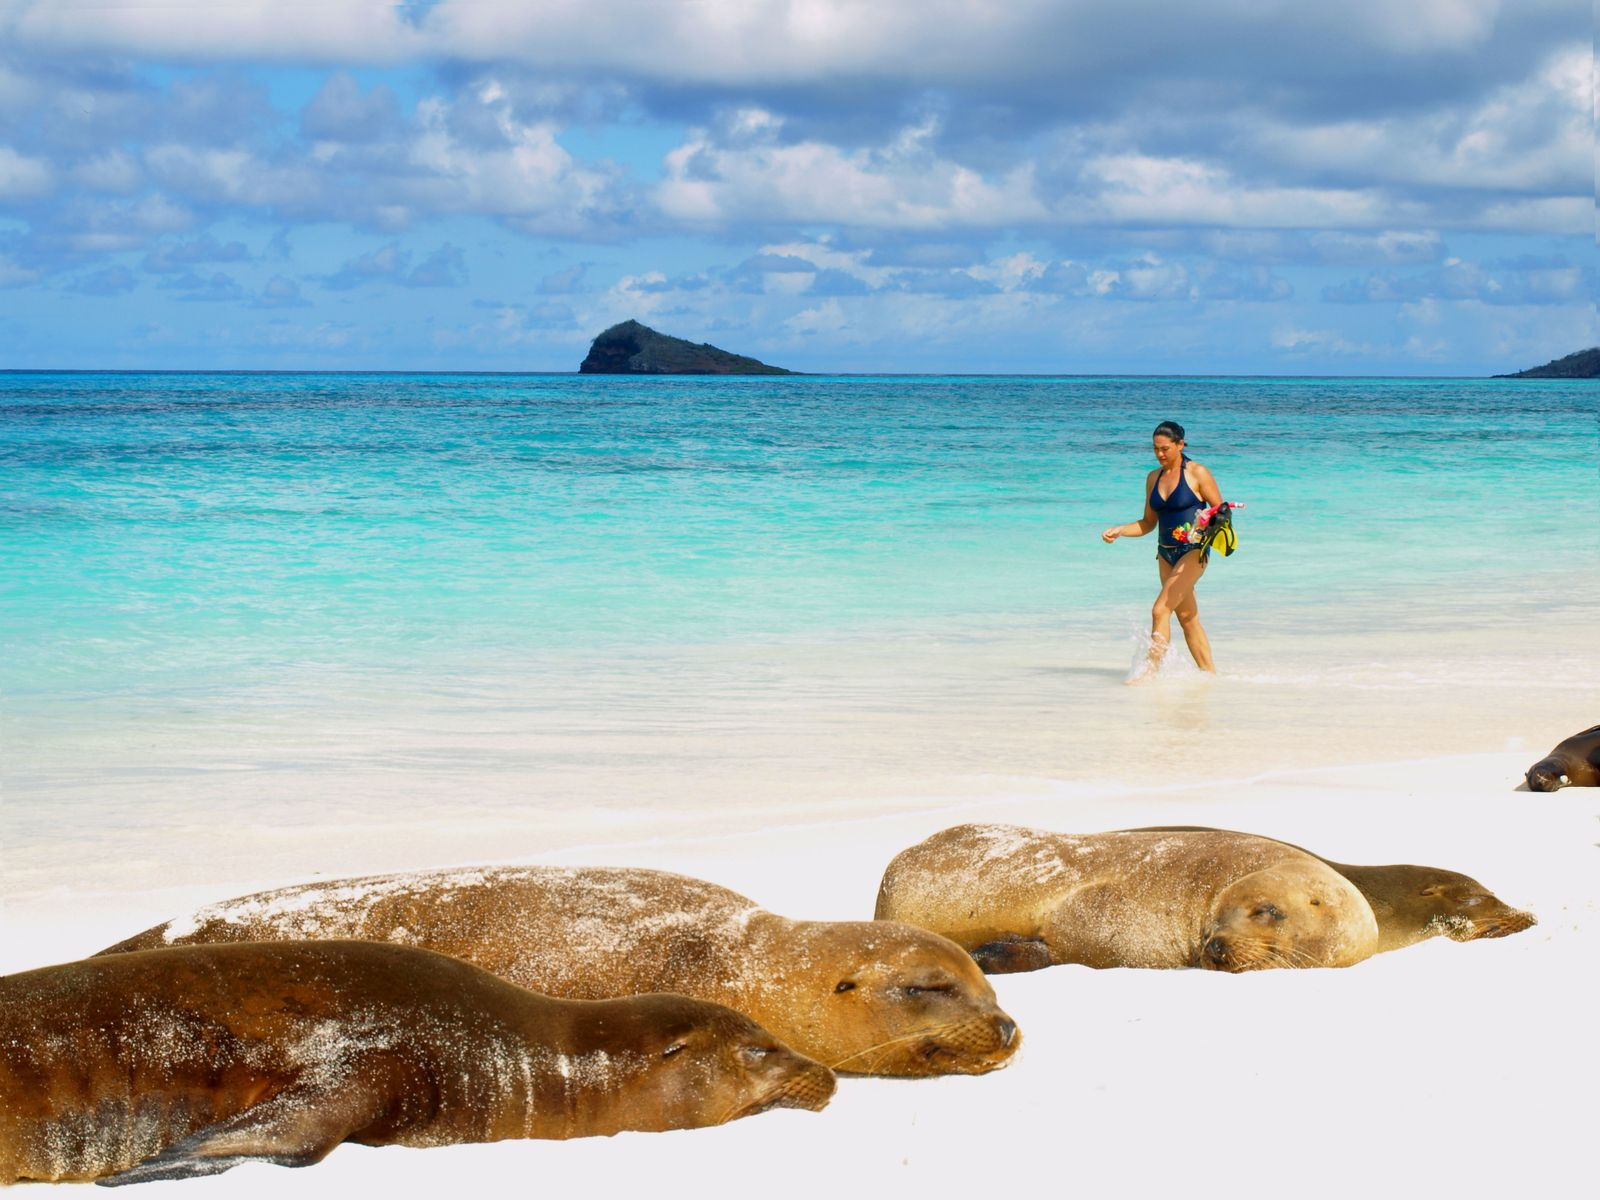 woman walking through turquoise water with sea lions in foreground